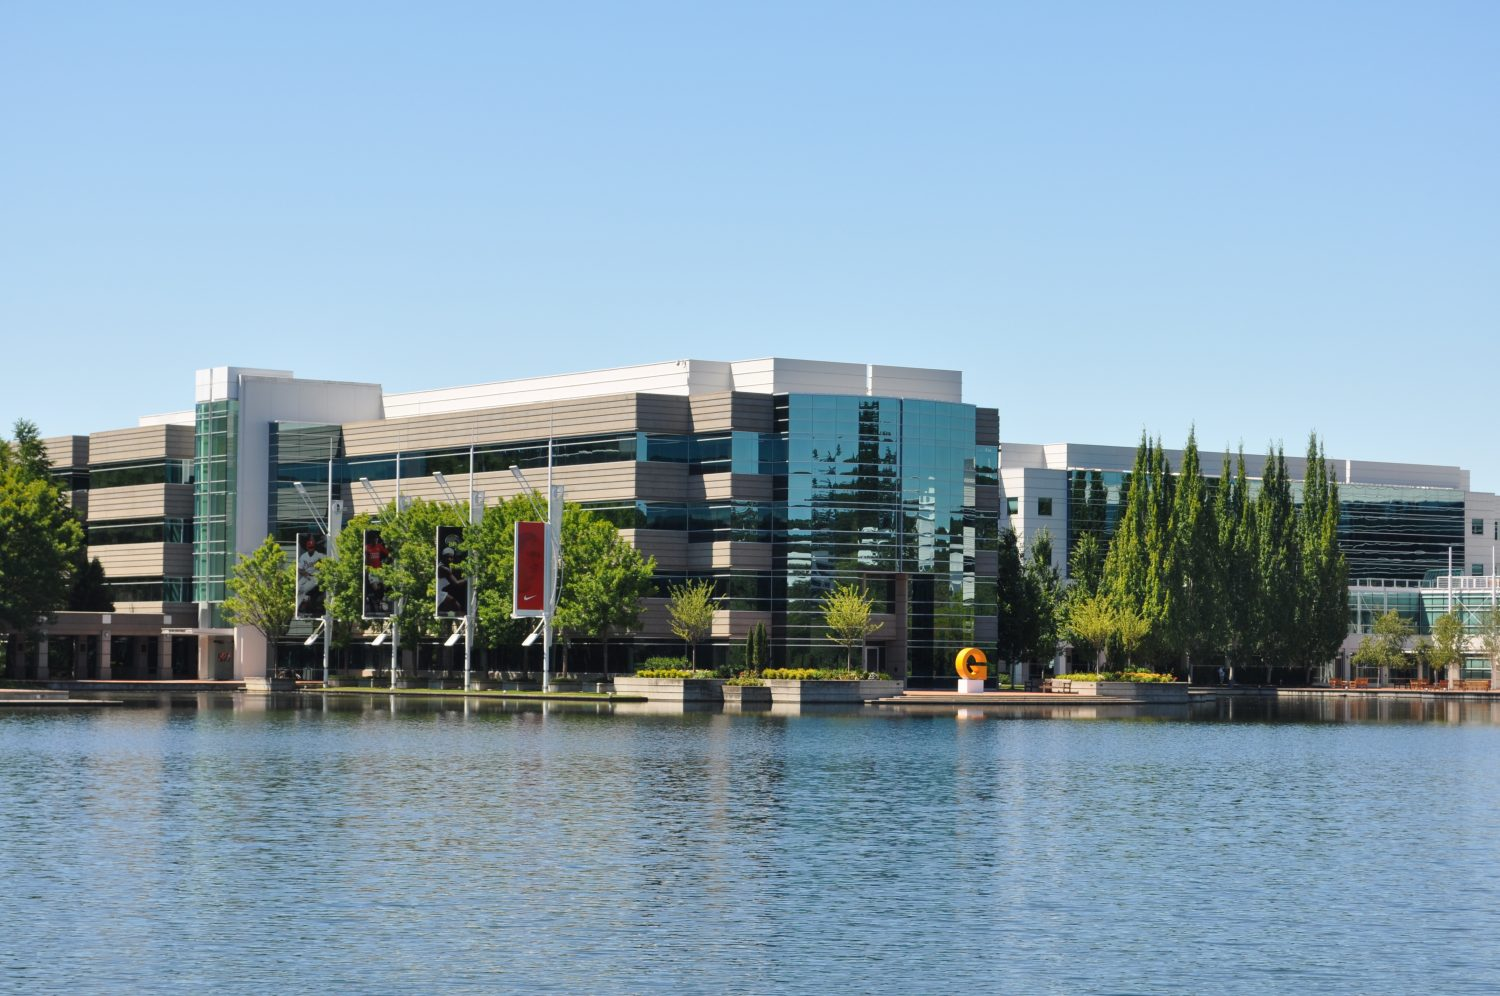 Nike Headquarters in Beaverton